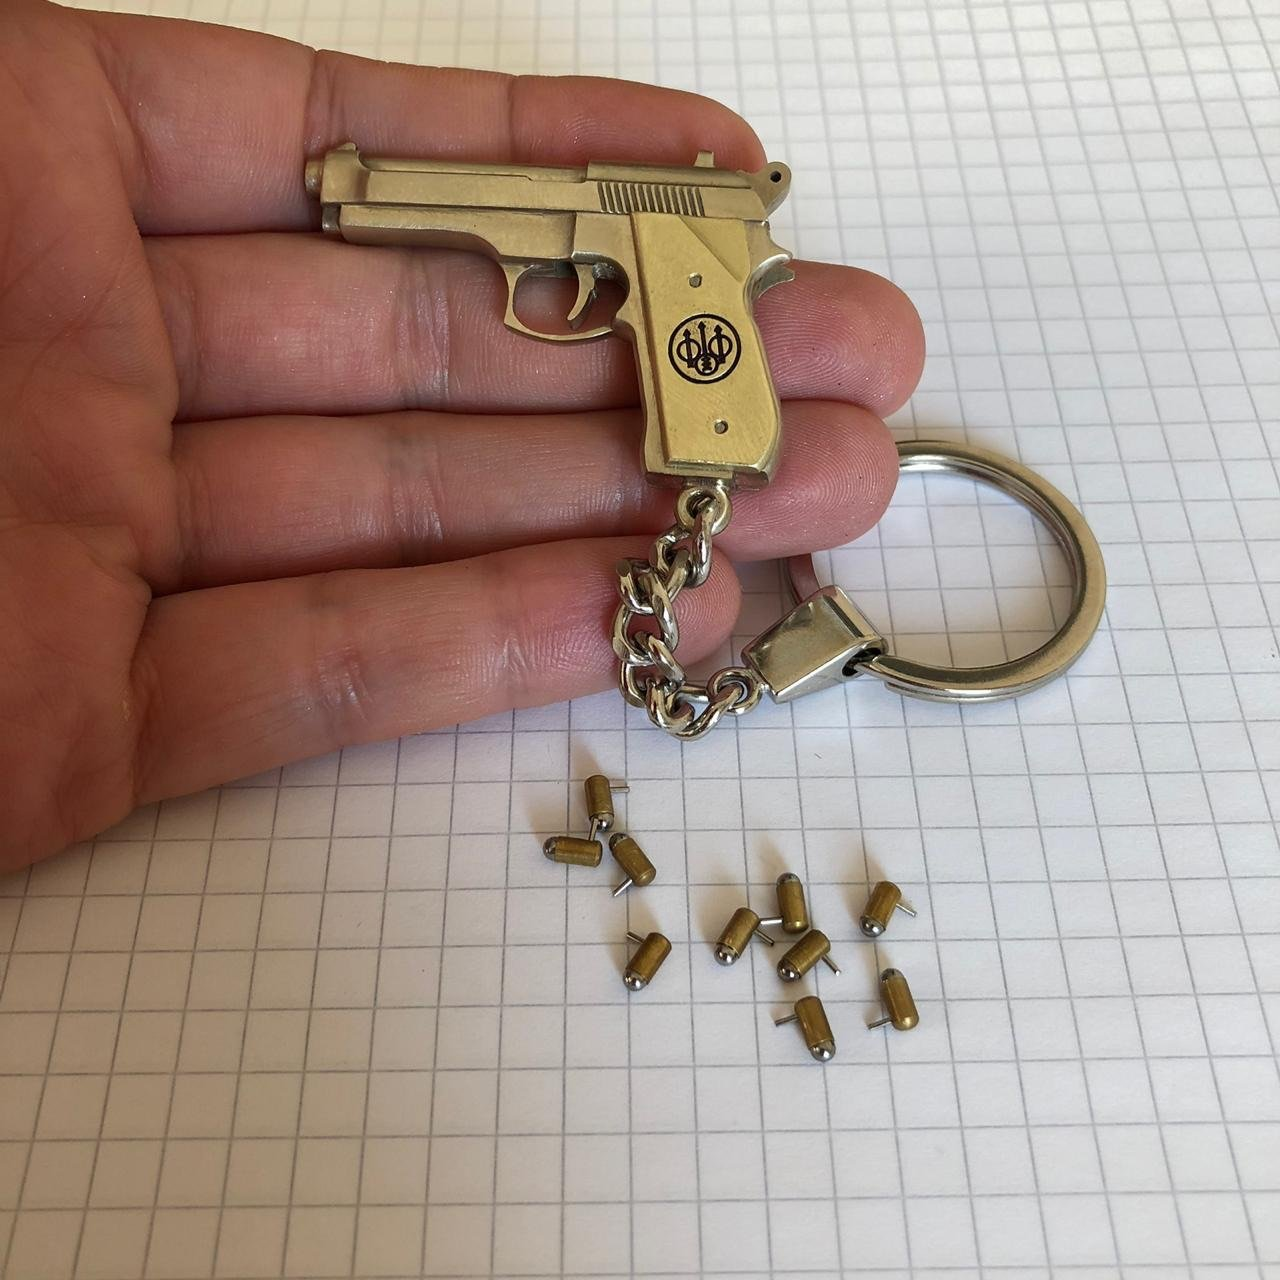 2mm Pinfire Replica - Gold Edition 2019